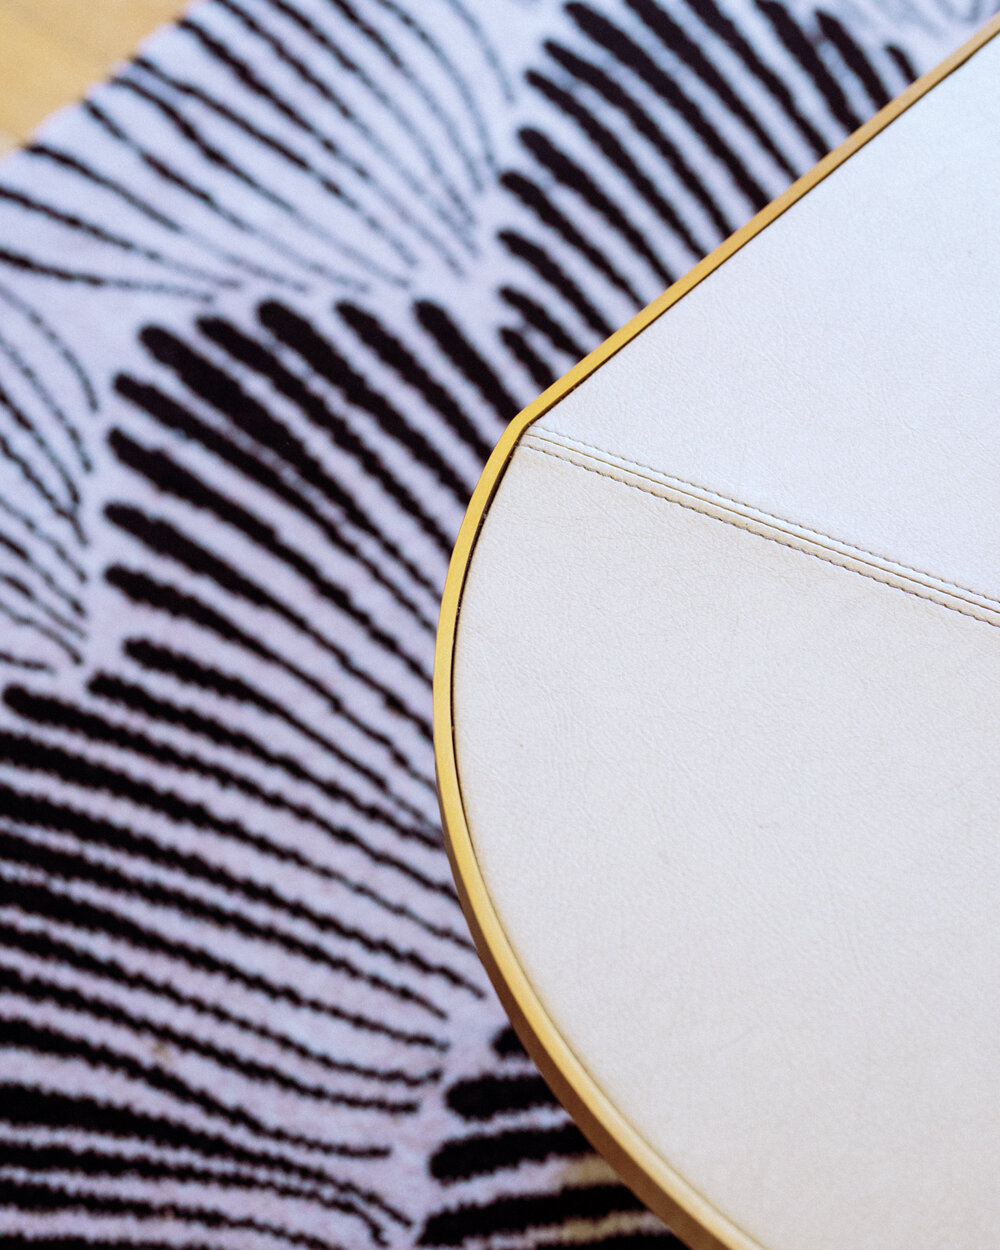 Rachel Off Duty: A Close-Up of a White and Black Rug